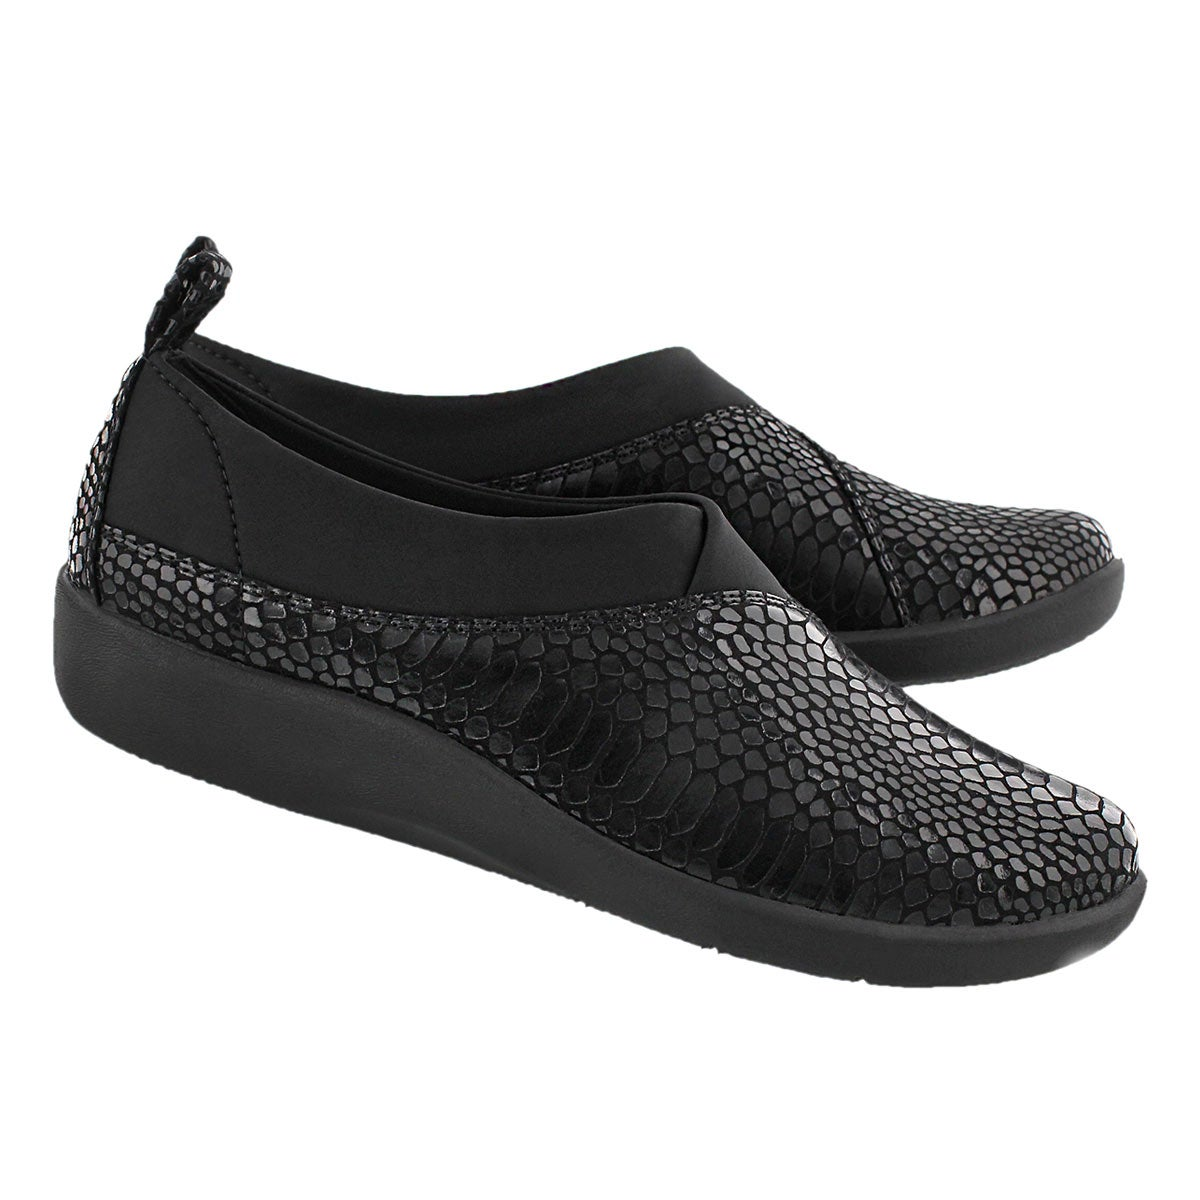 Lds Sillian Greer blk snk casual slip on